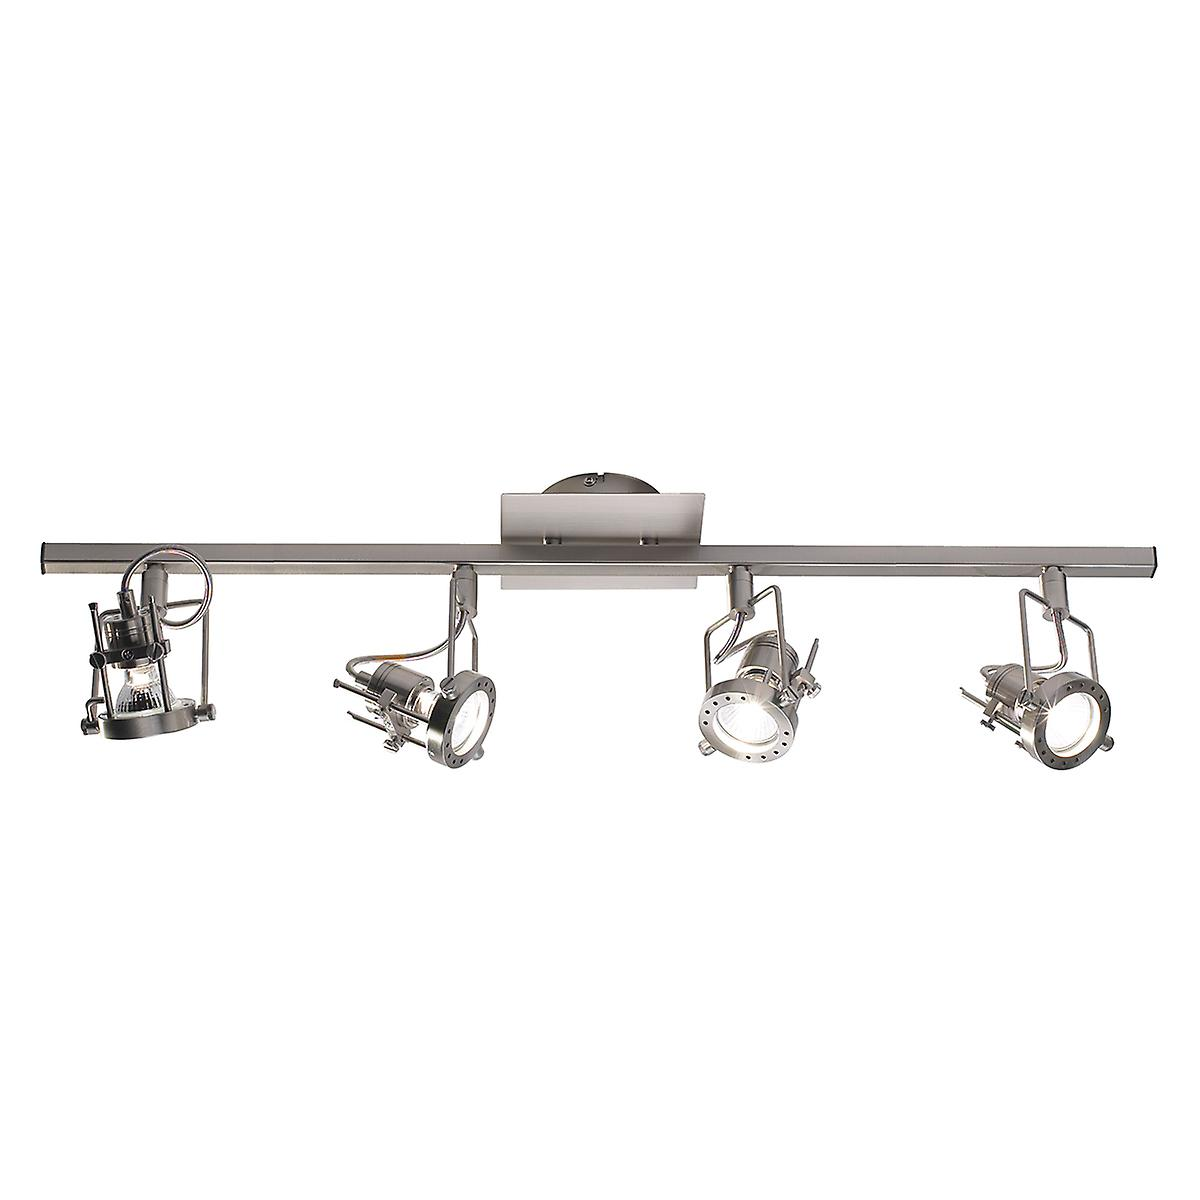 Dar BAU8446 Bauhaus Modern Chrome 4 Light Wall Or Ceiling Spot Light Bar